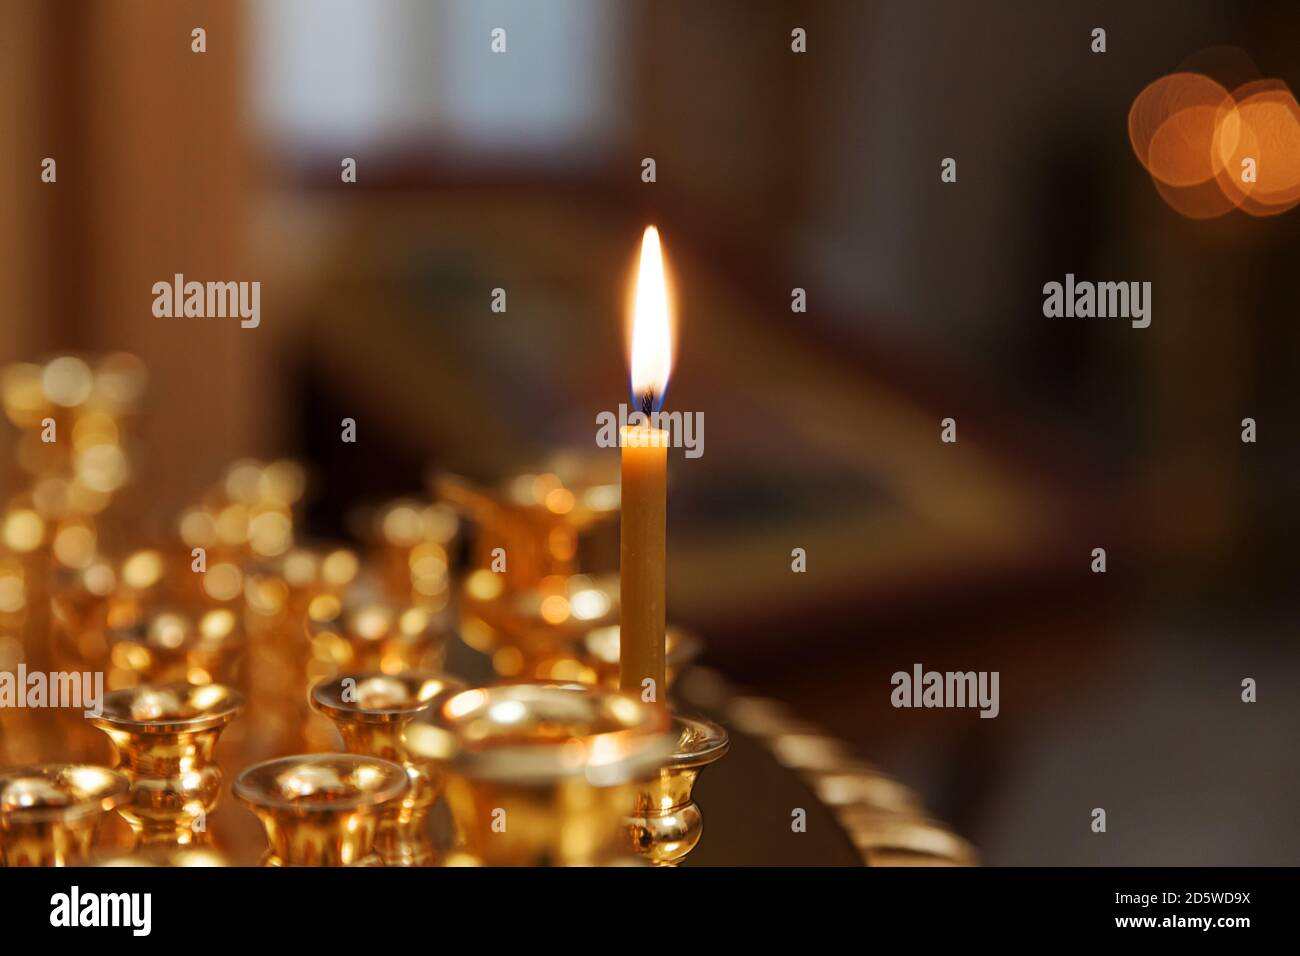 Orthodox Church. Christianity. Festive interior decoration with burning candles and icon in traditional Orthodox Church on Easter Eve or Christmas. Religion faith pray symbol Stock Photo